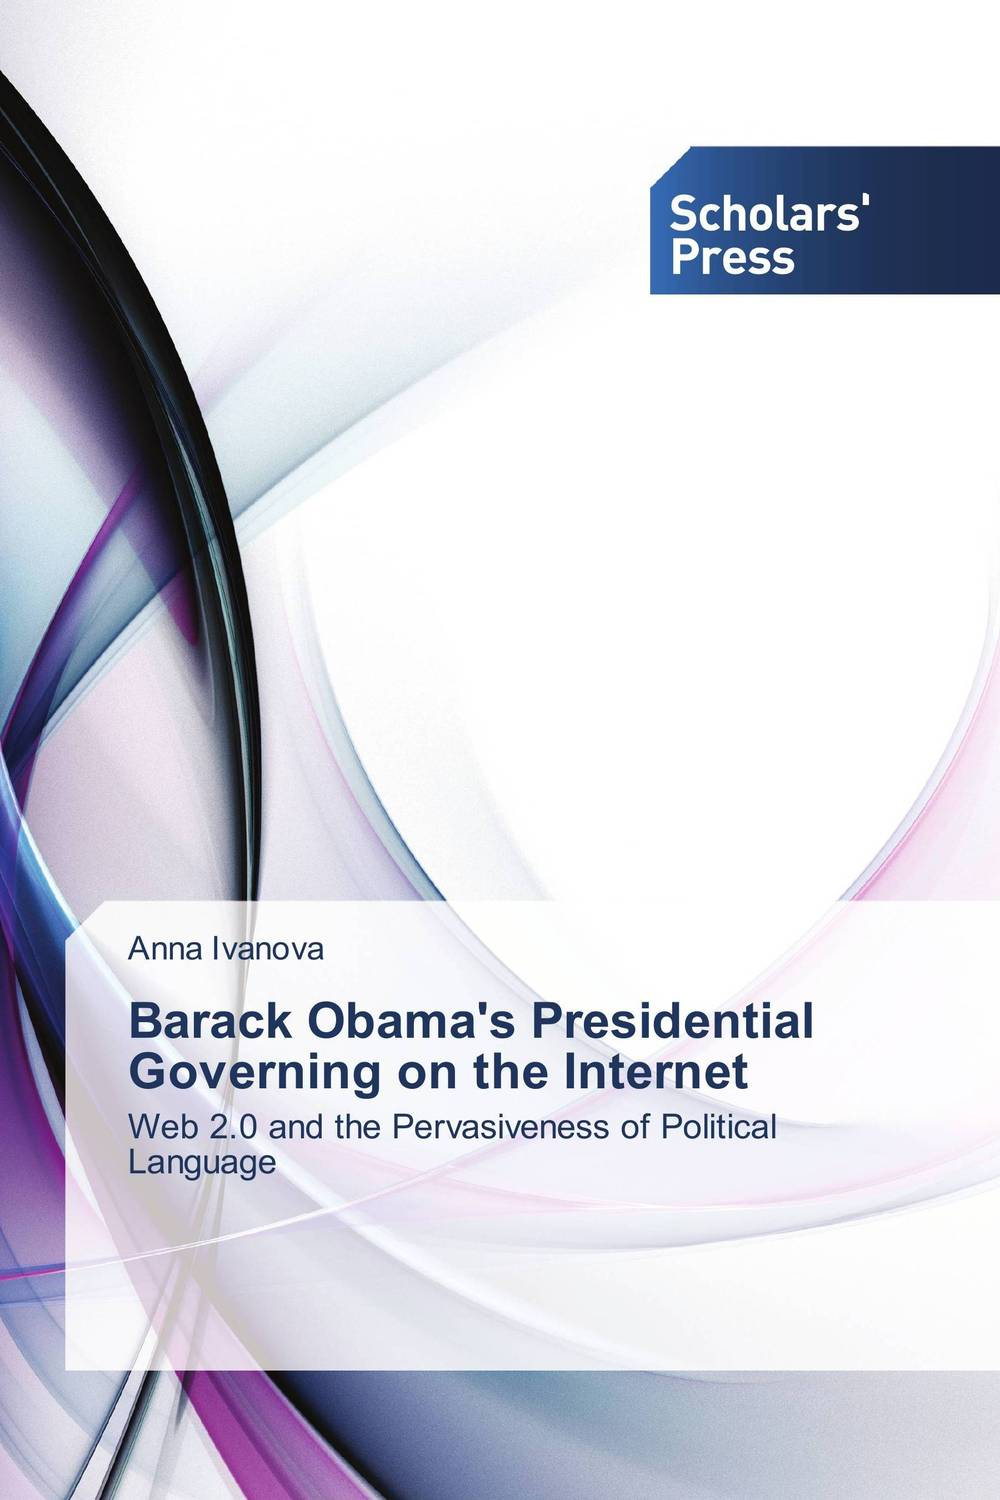 Barack Obama's Presidential Governing on the Internet presidential nominee will address a gathering